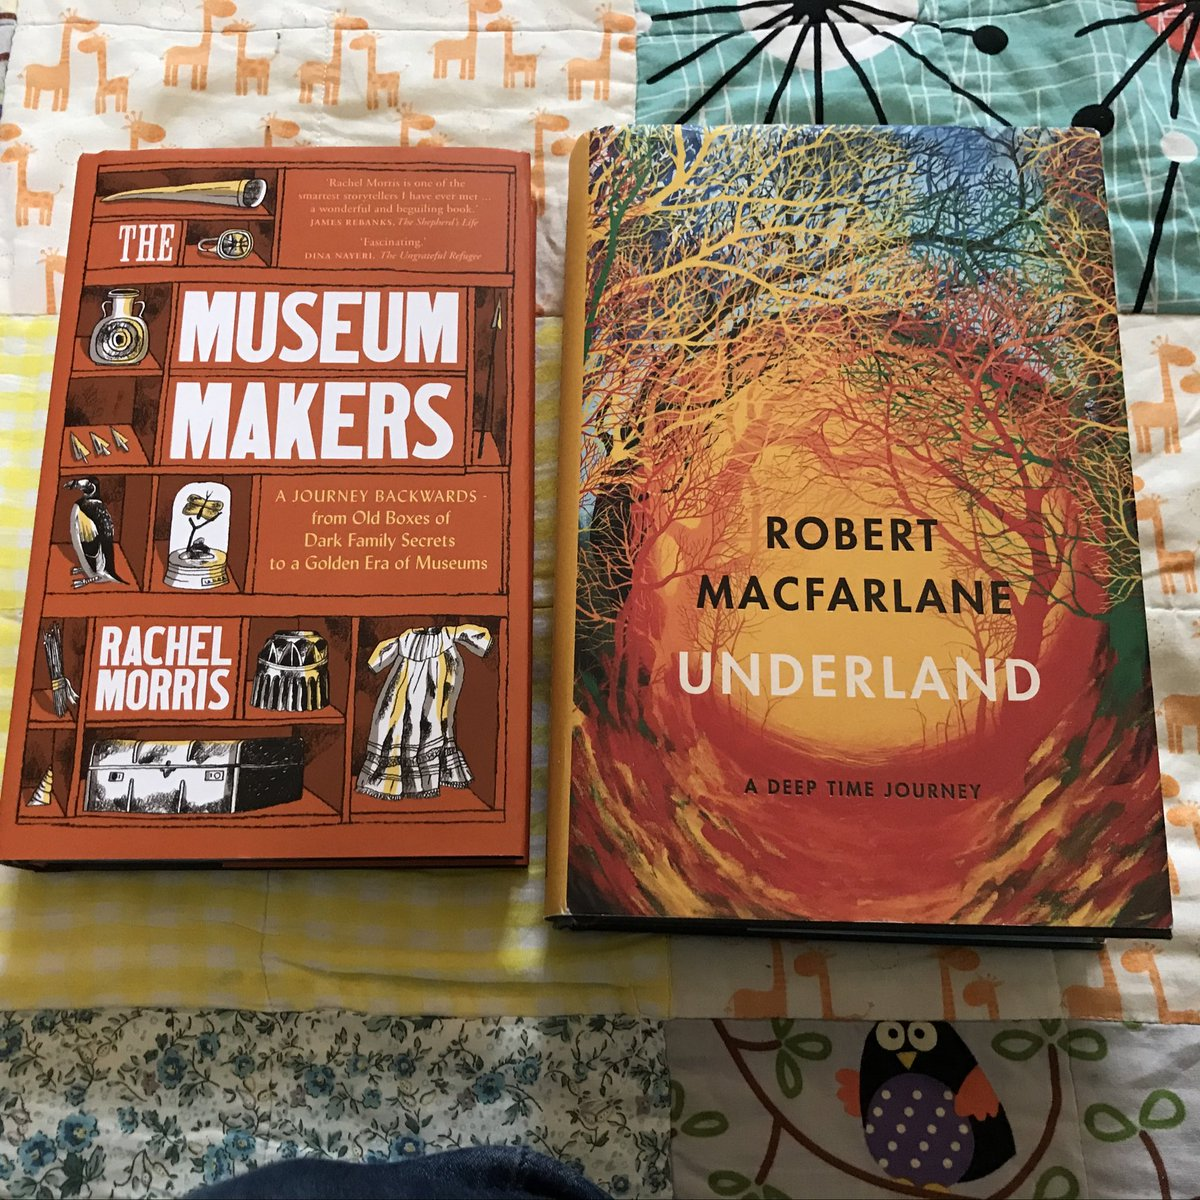 Wow, this is high praise for my book #TheMuseumMakers from @SamanthaEllis27 and I am flattered to be bracketed with @RobGMacfarlane  @septemberbooks